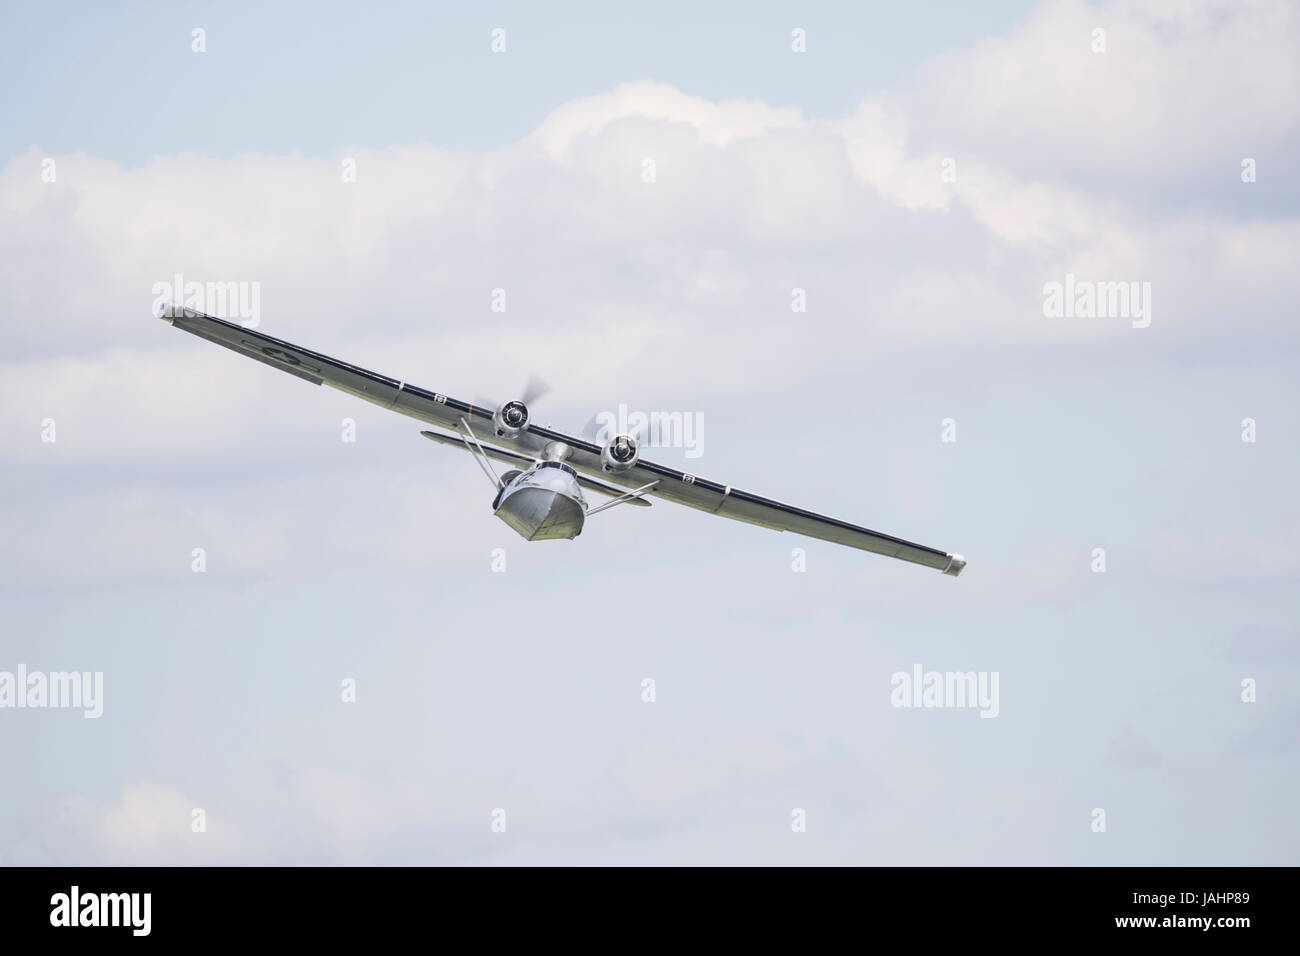 Preserved PBY-5A Catalina flying boat  flying at a Duxford air show - Stock Image